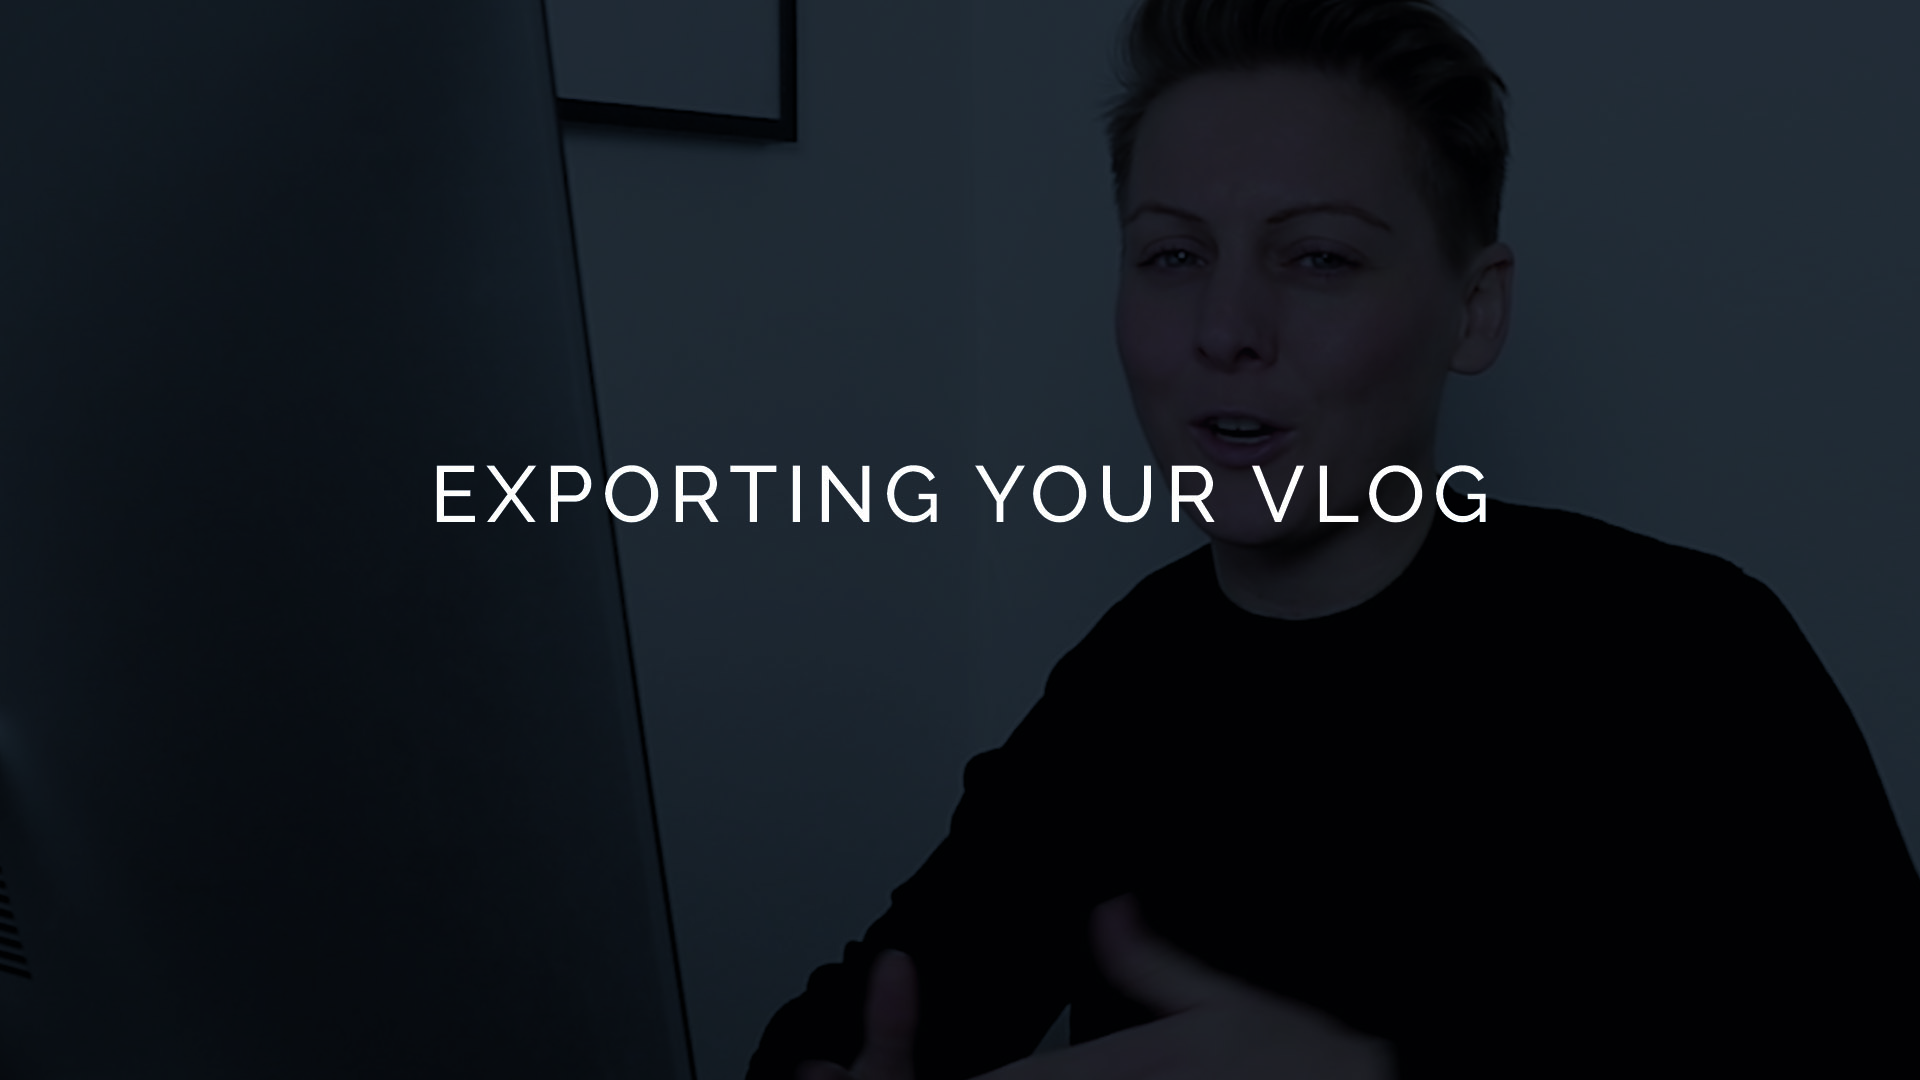 How to export a vlog in imovie